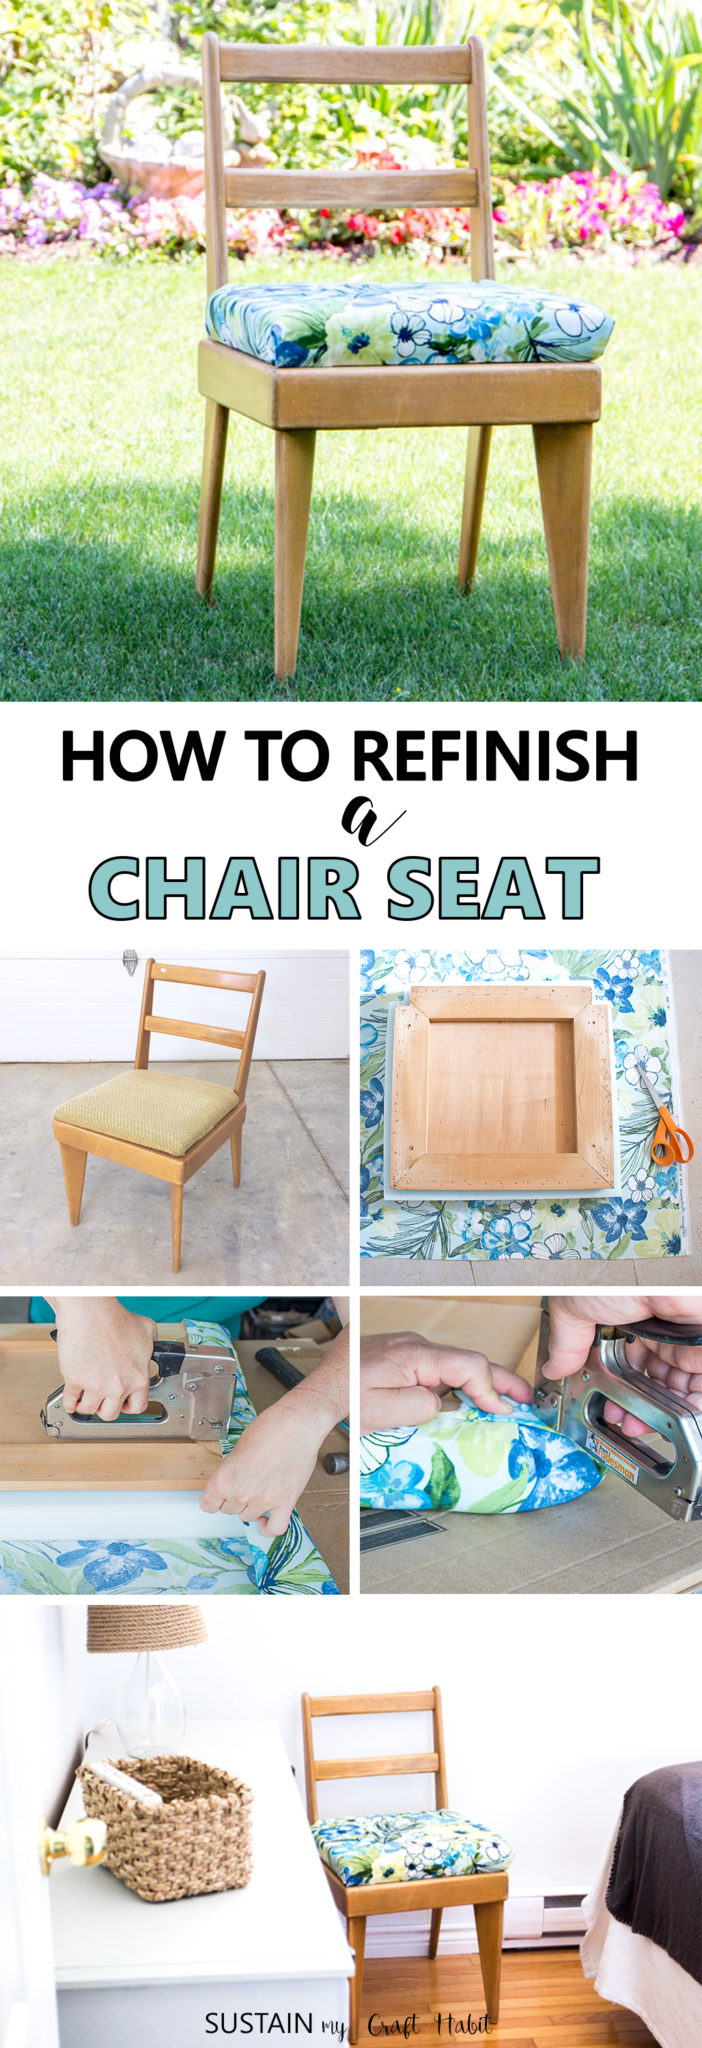 How to refinish a chair seat | Tips and tricks how to reupholster a chair | DIY chair reupholstering | Upcycled furniture | Vintage chair makeover